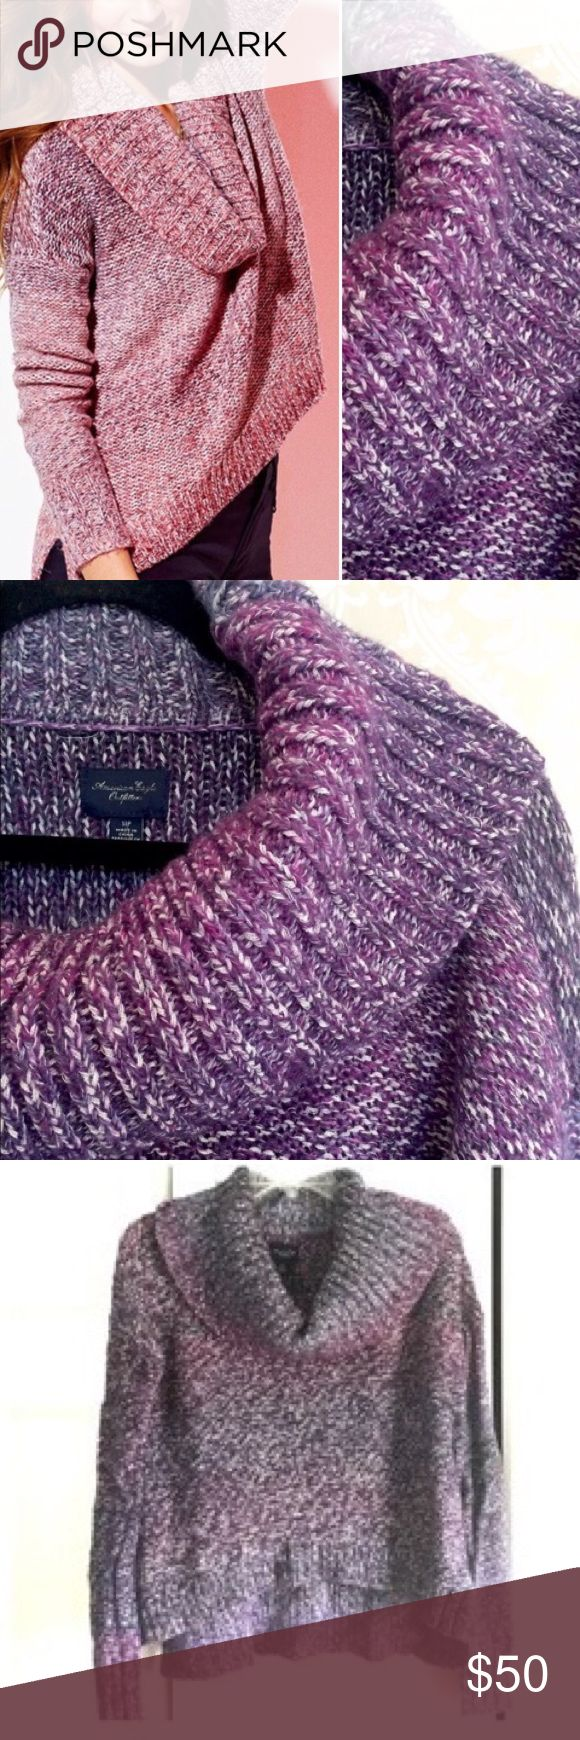 AE purple sweater American Eagle sweater in ombré purple (model is wearing the pink color).  The first three photos I found online and the rest are my own.  I wore this sweater only once.  It is still brand new looking with no flaws!  No trades American Eagle Outfitters Sweaters